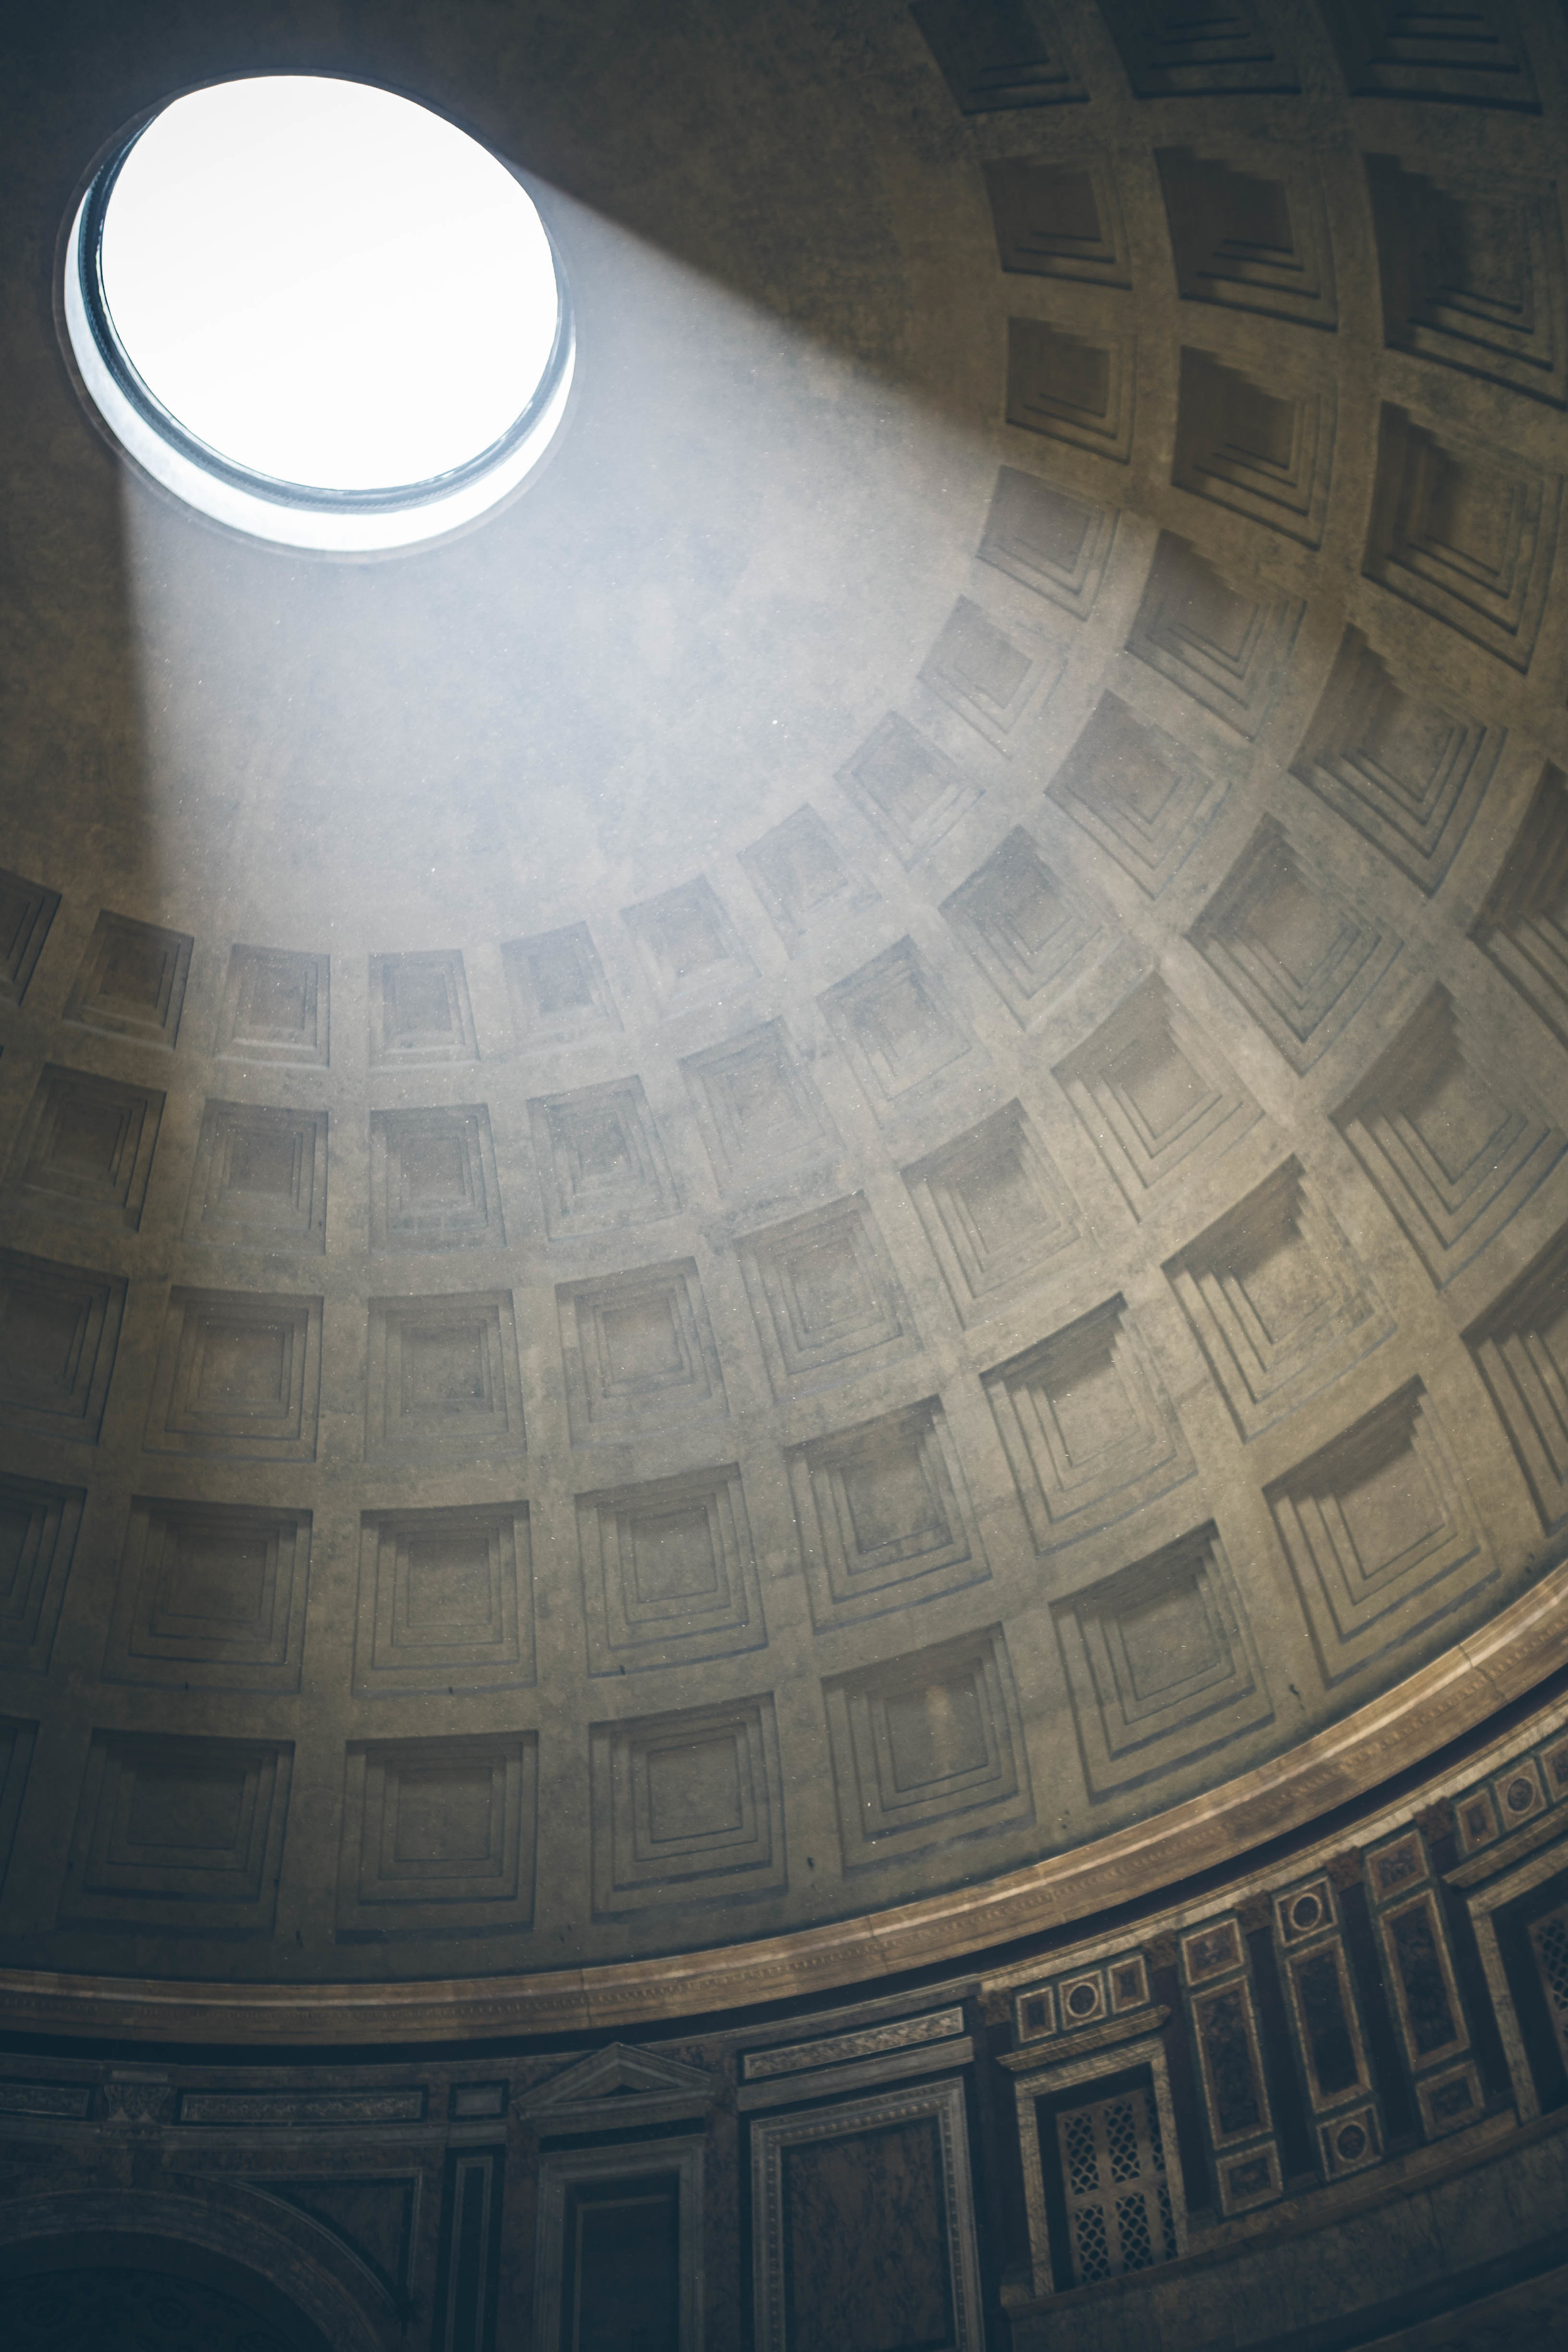 The Pantheon's open air oculus looks even better when it snows